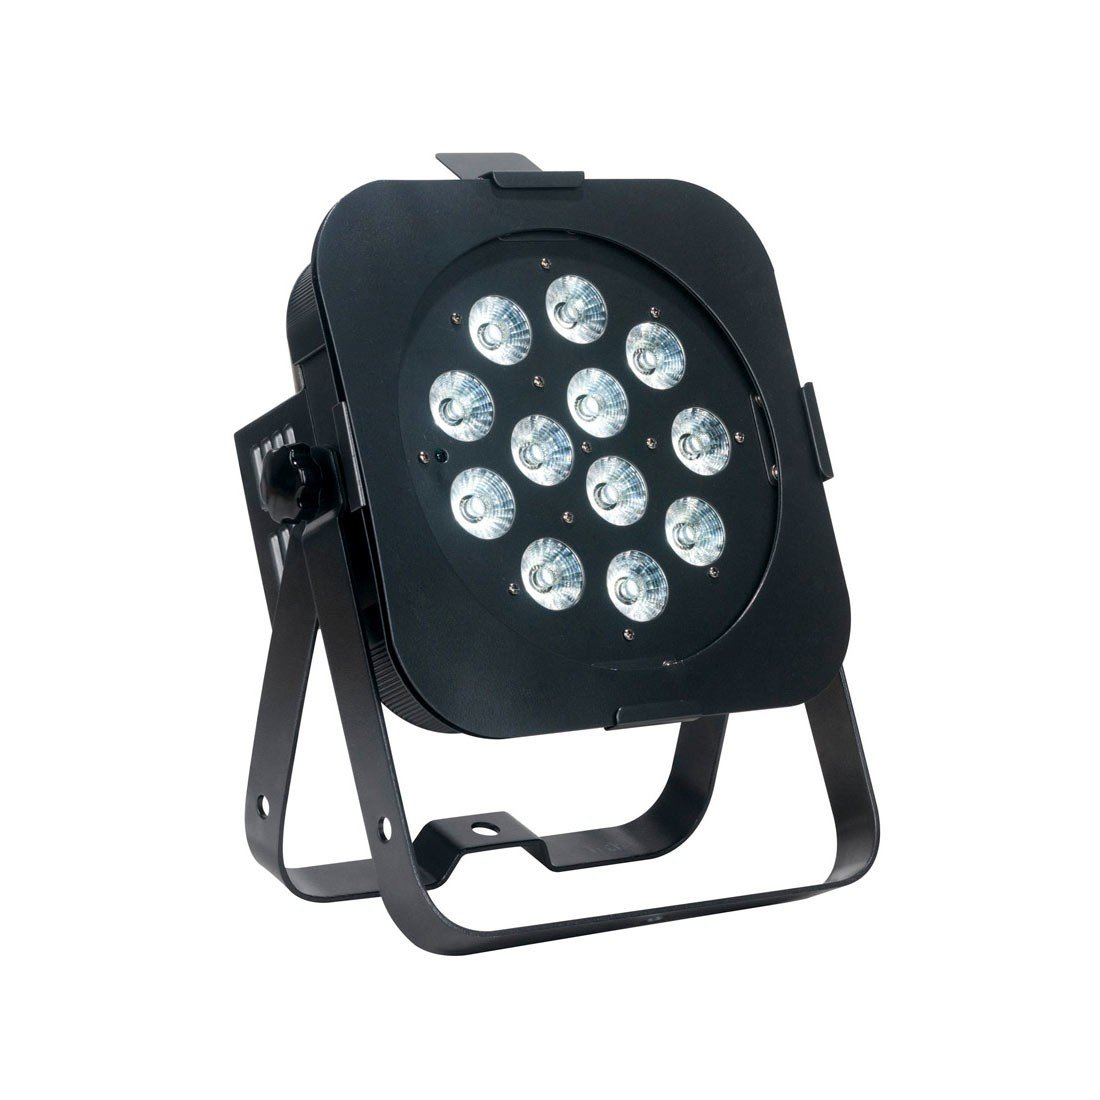 ADJ Products FLAT PAR TW12 Stage Light Unit by ADJ Products